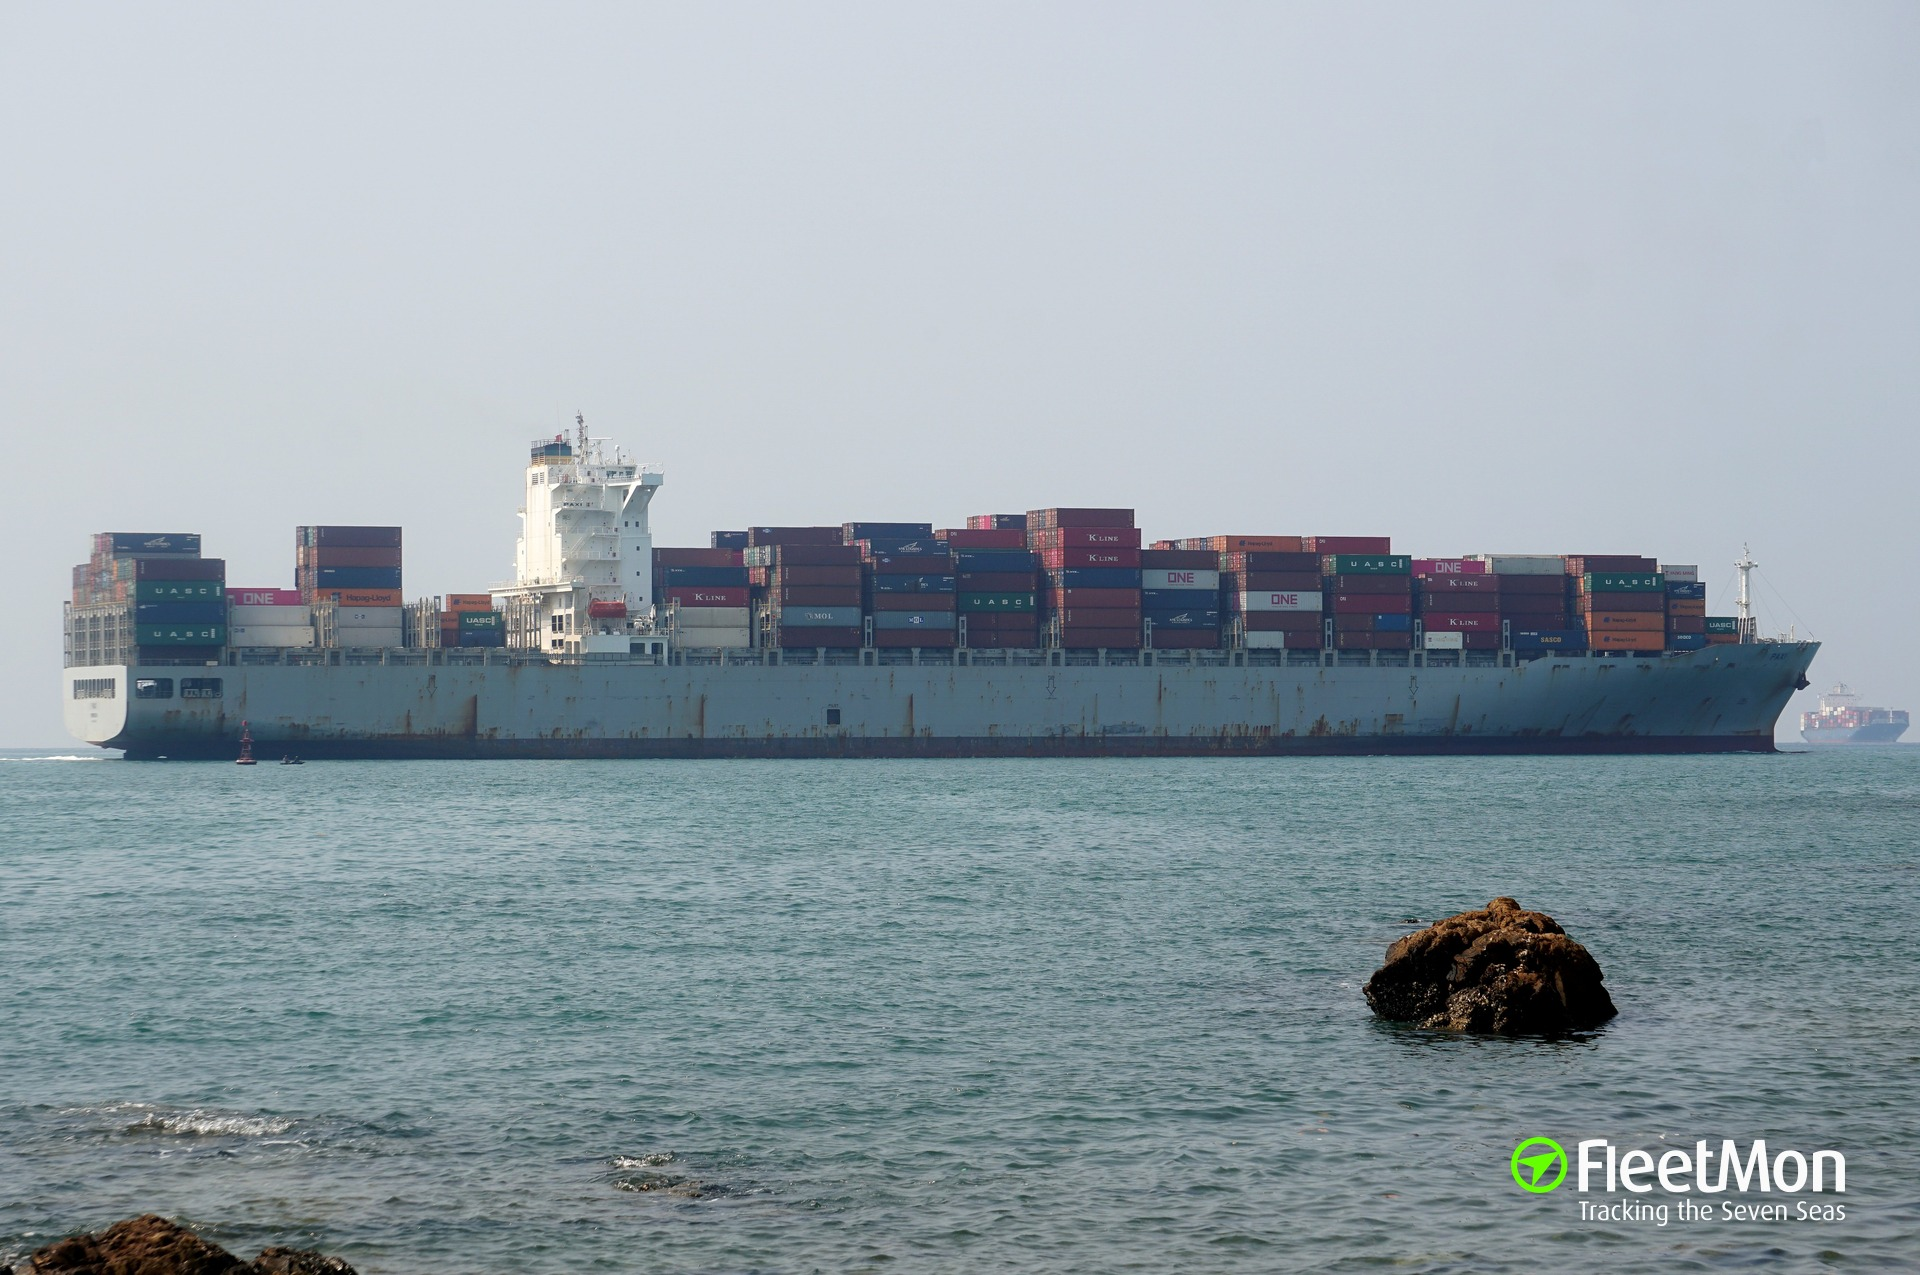 Vessel PAXI (Container ship) IMO 9679555, MMSI 636016307